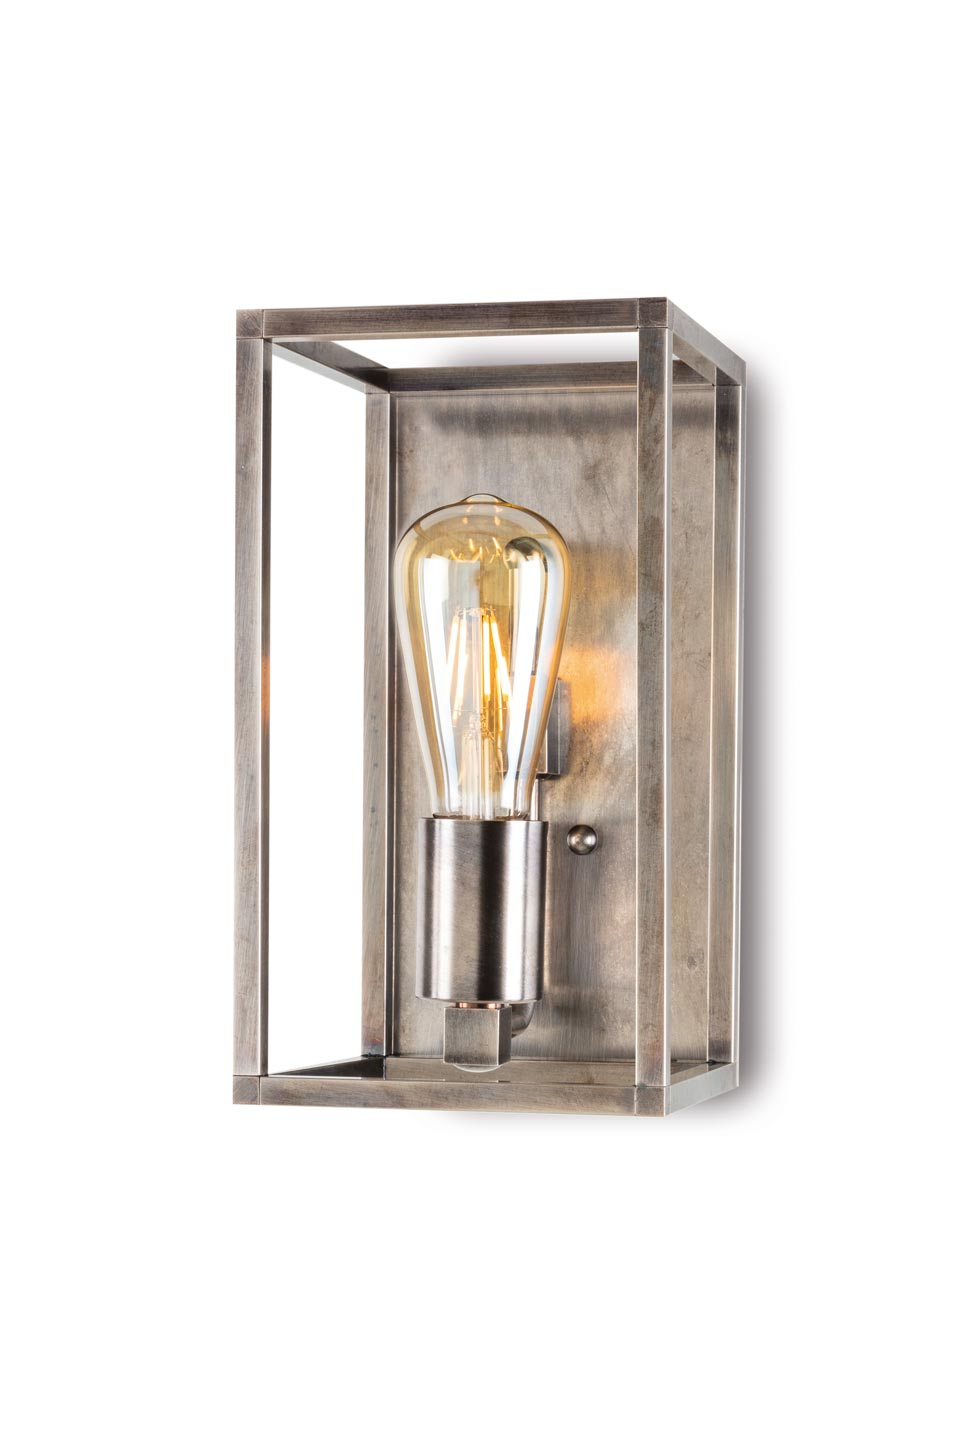 Cubic Lantern wall lamp in aged nickel. Moretti Luce.